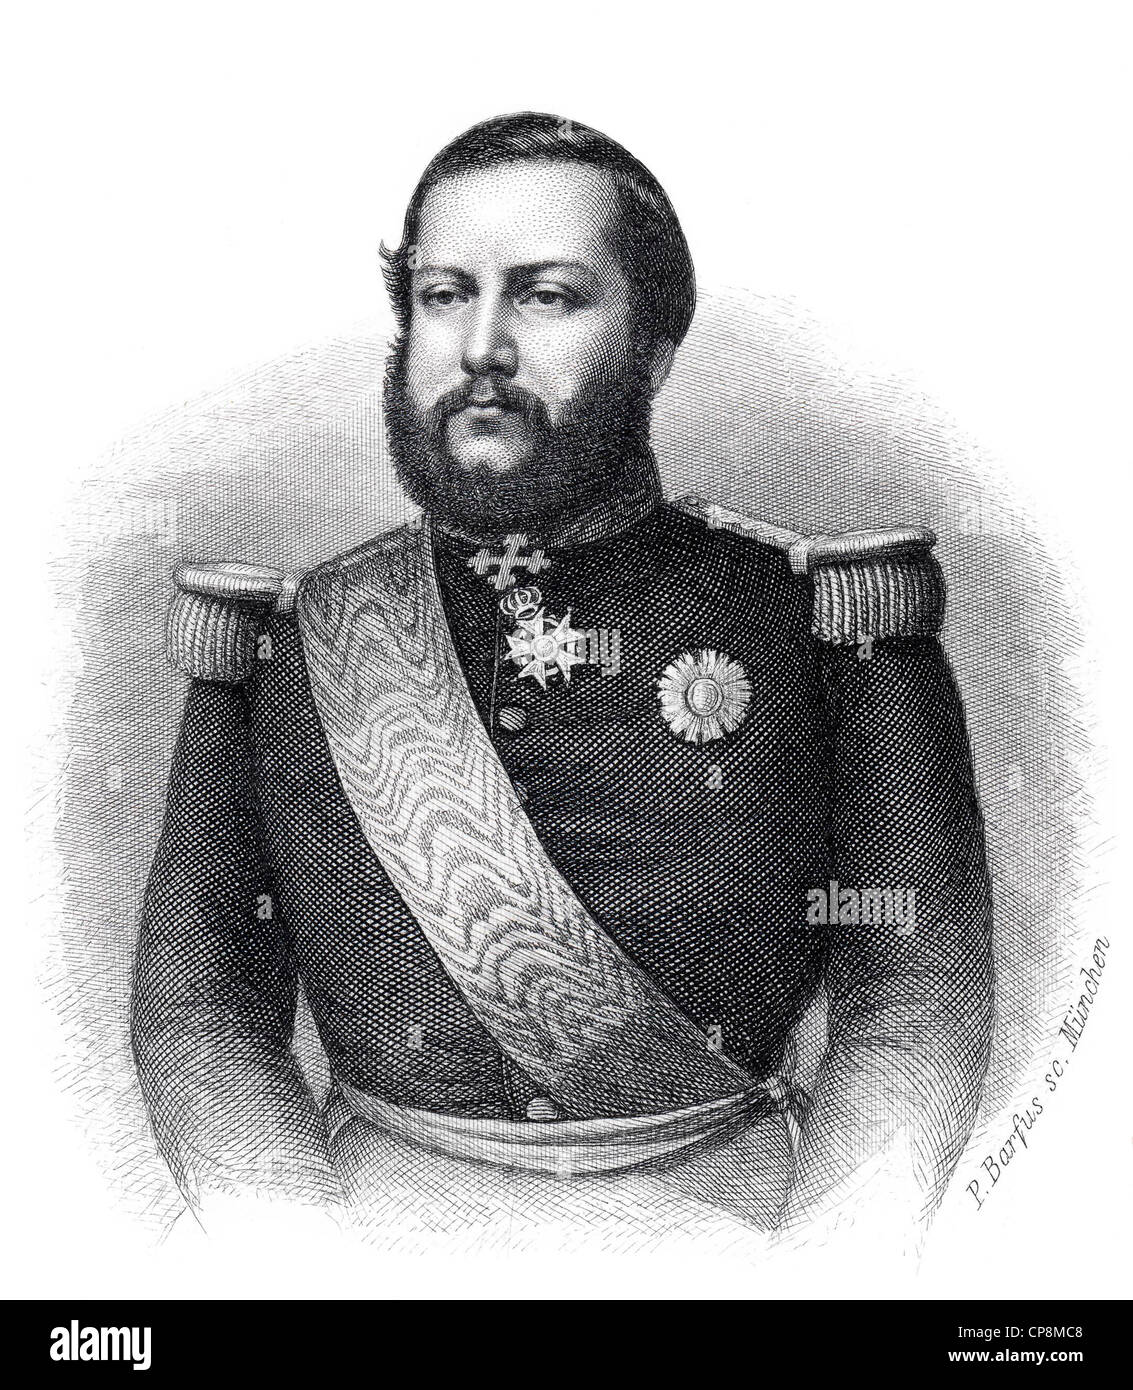 Francisco Solano López Carrillo, President of Paraguay, 19th century, Historic steel engraving from the 19th - Stock Image